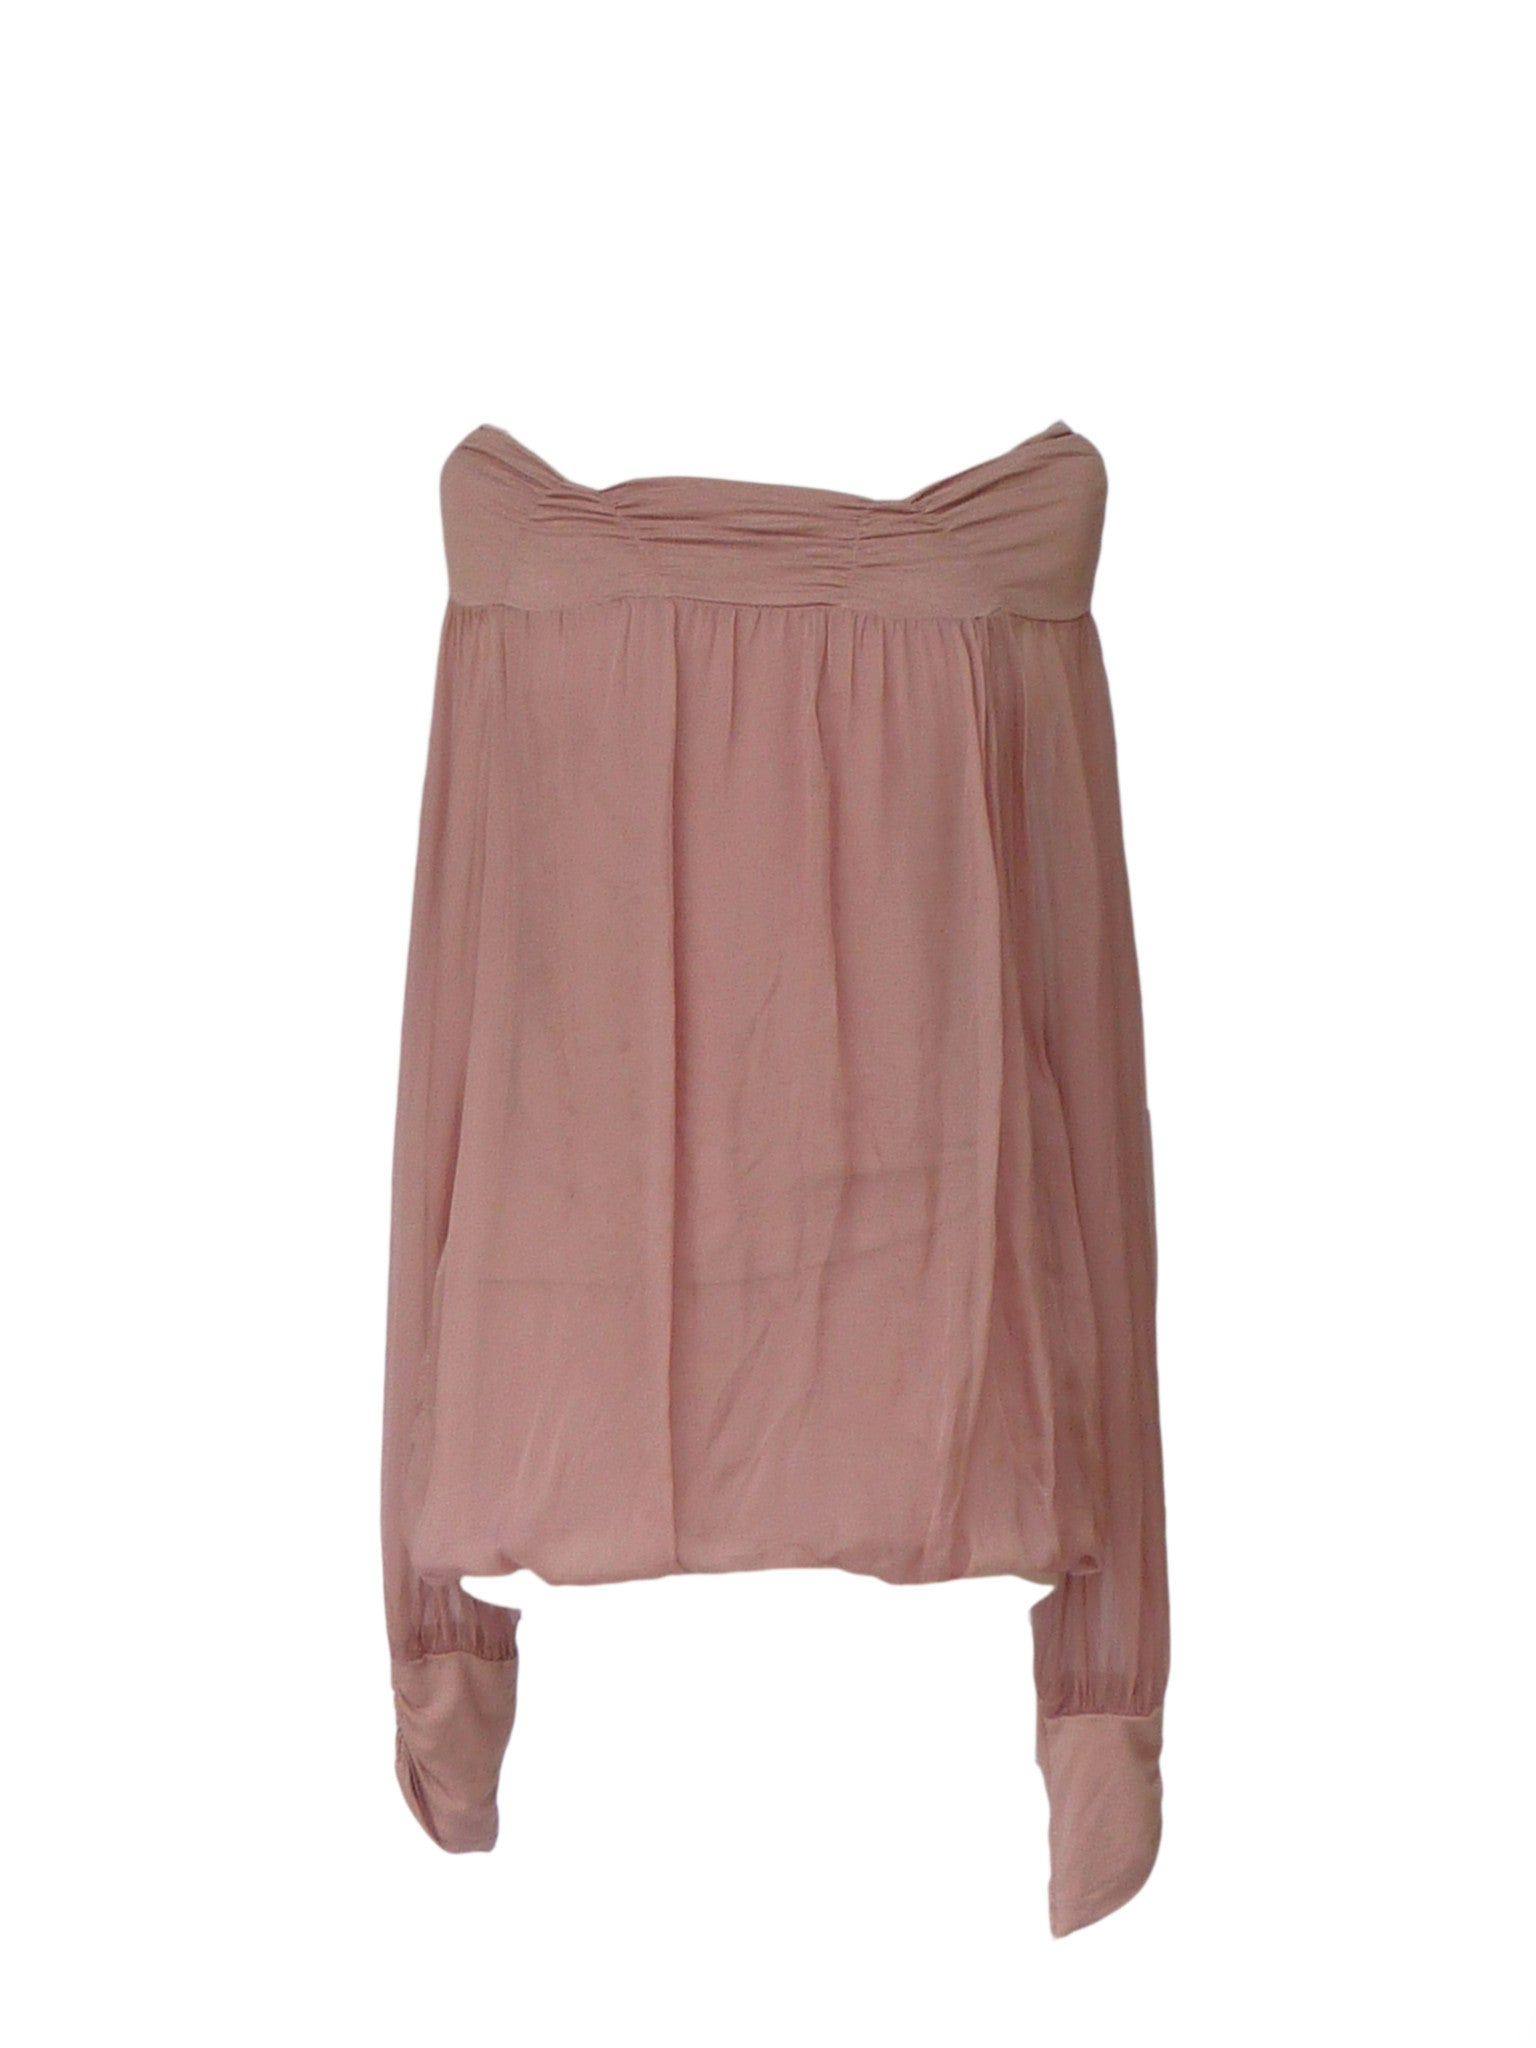 Luccia Silk Top in Dusky Pink - Feathers Of Italy